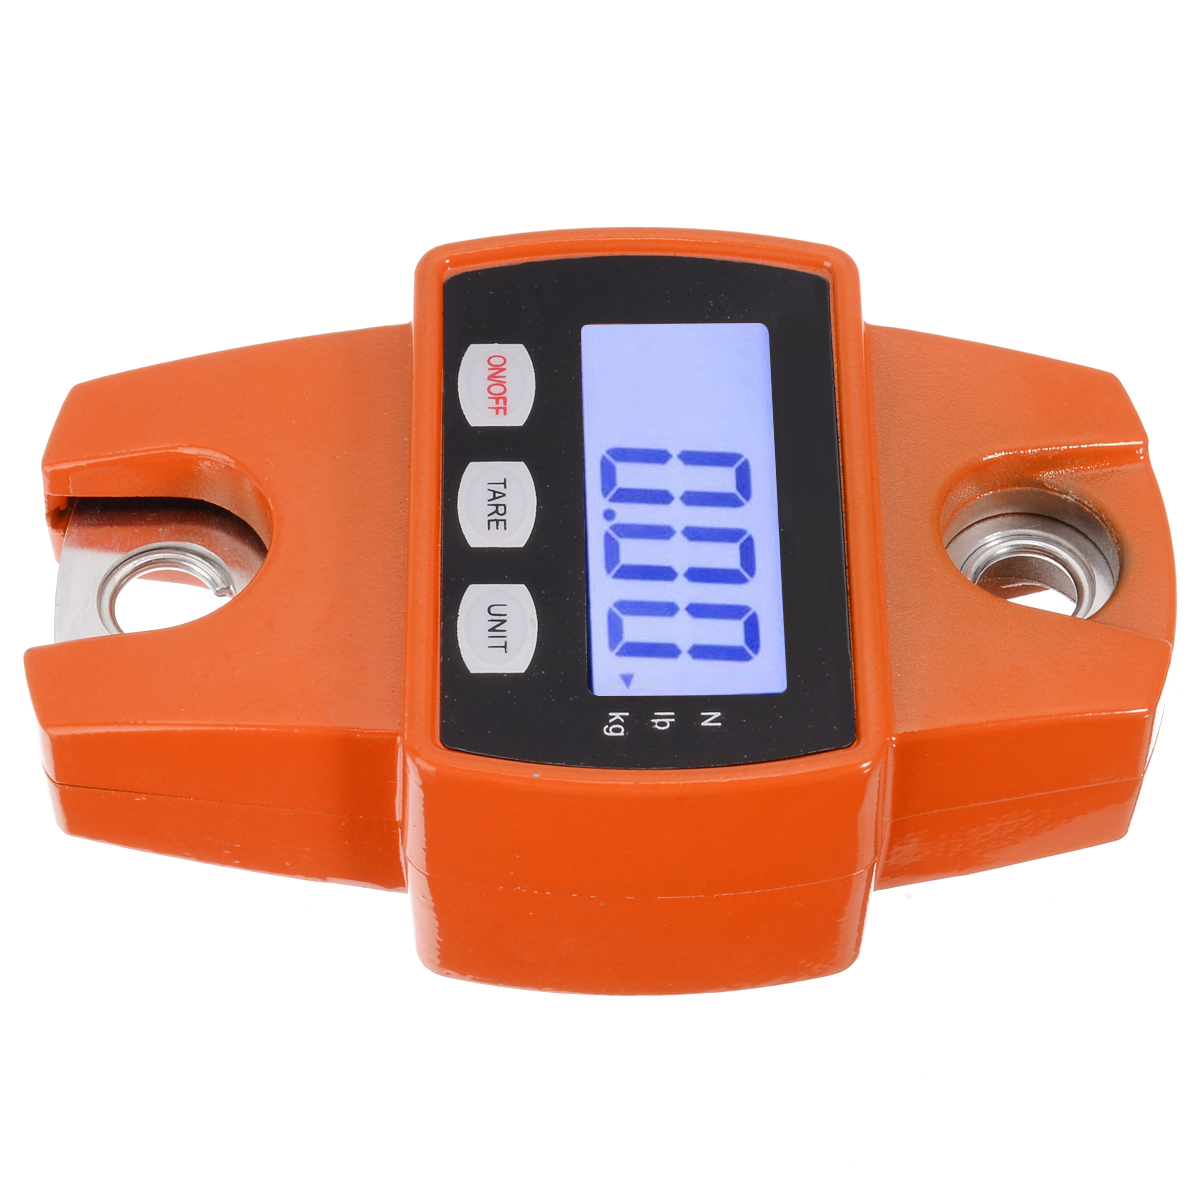 1pc Digital Crane Scale 300kg 600lb Heavy Duty Digital Mini Electronic Hanging Hook Weighing Luggage With LED Display in Weighing Scales from Tools